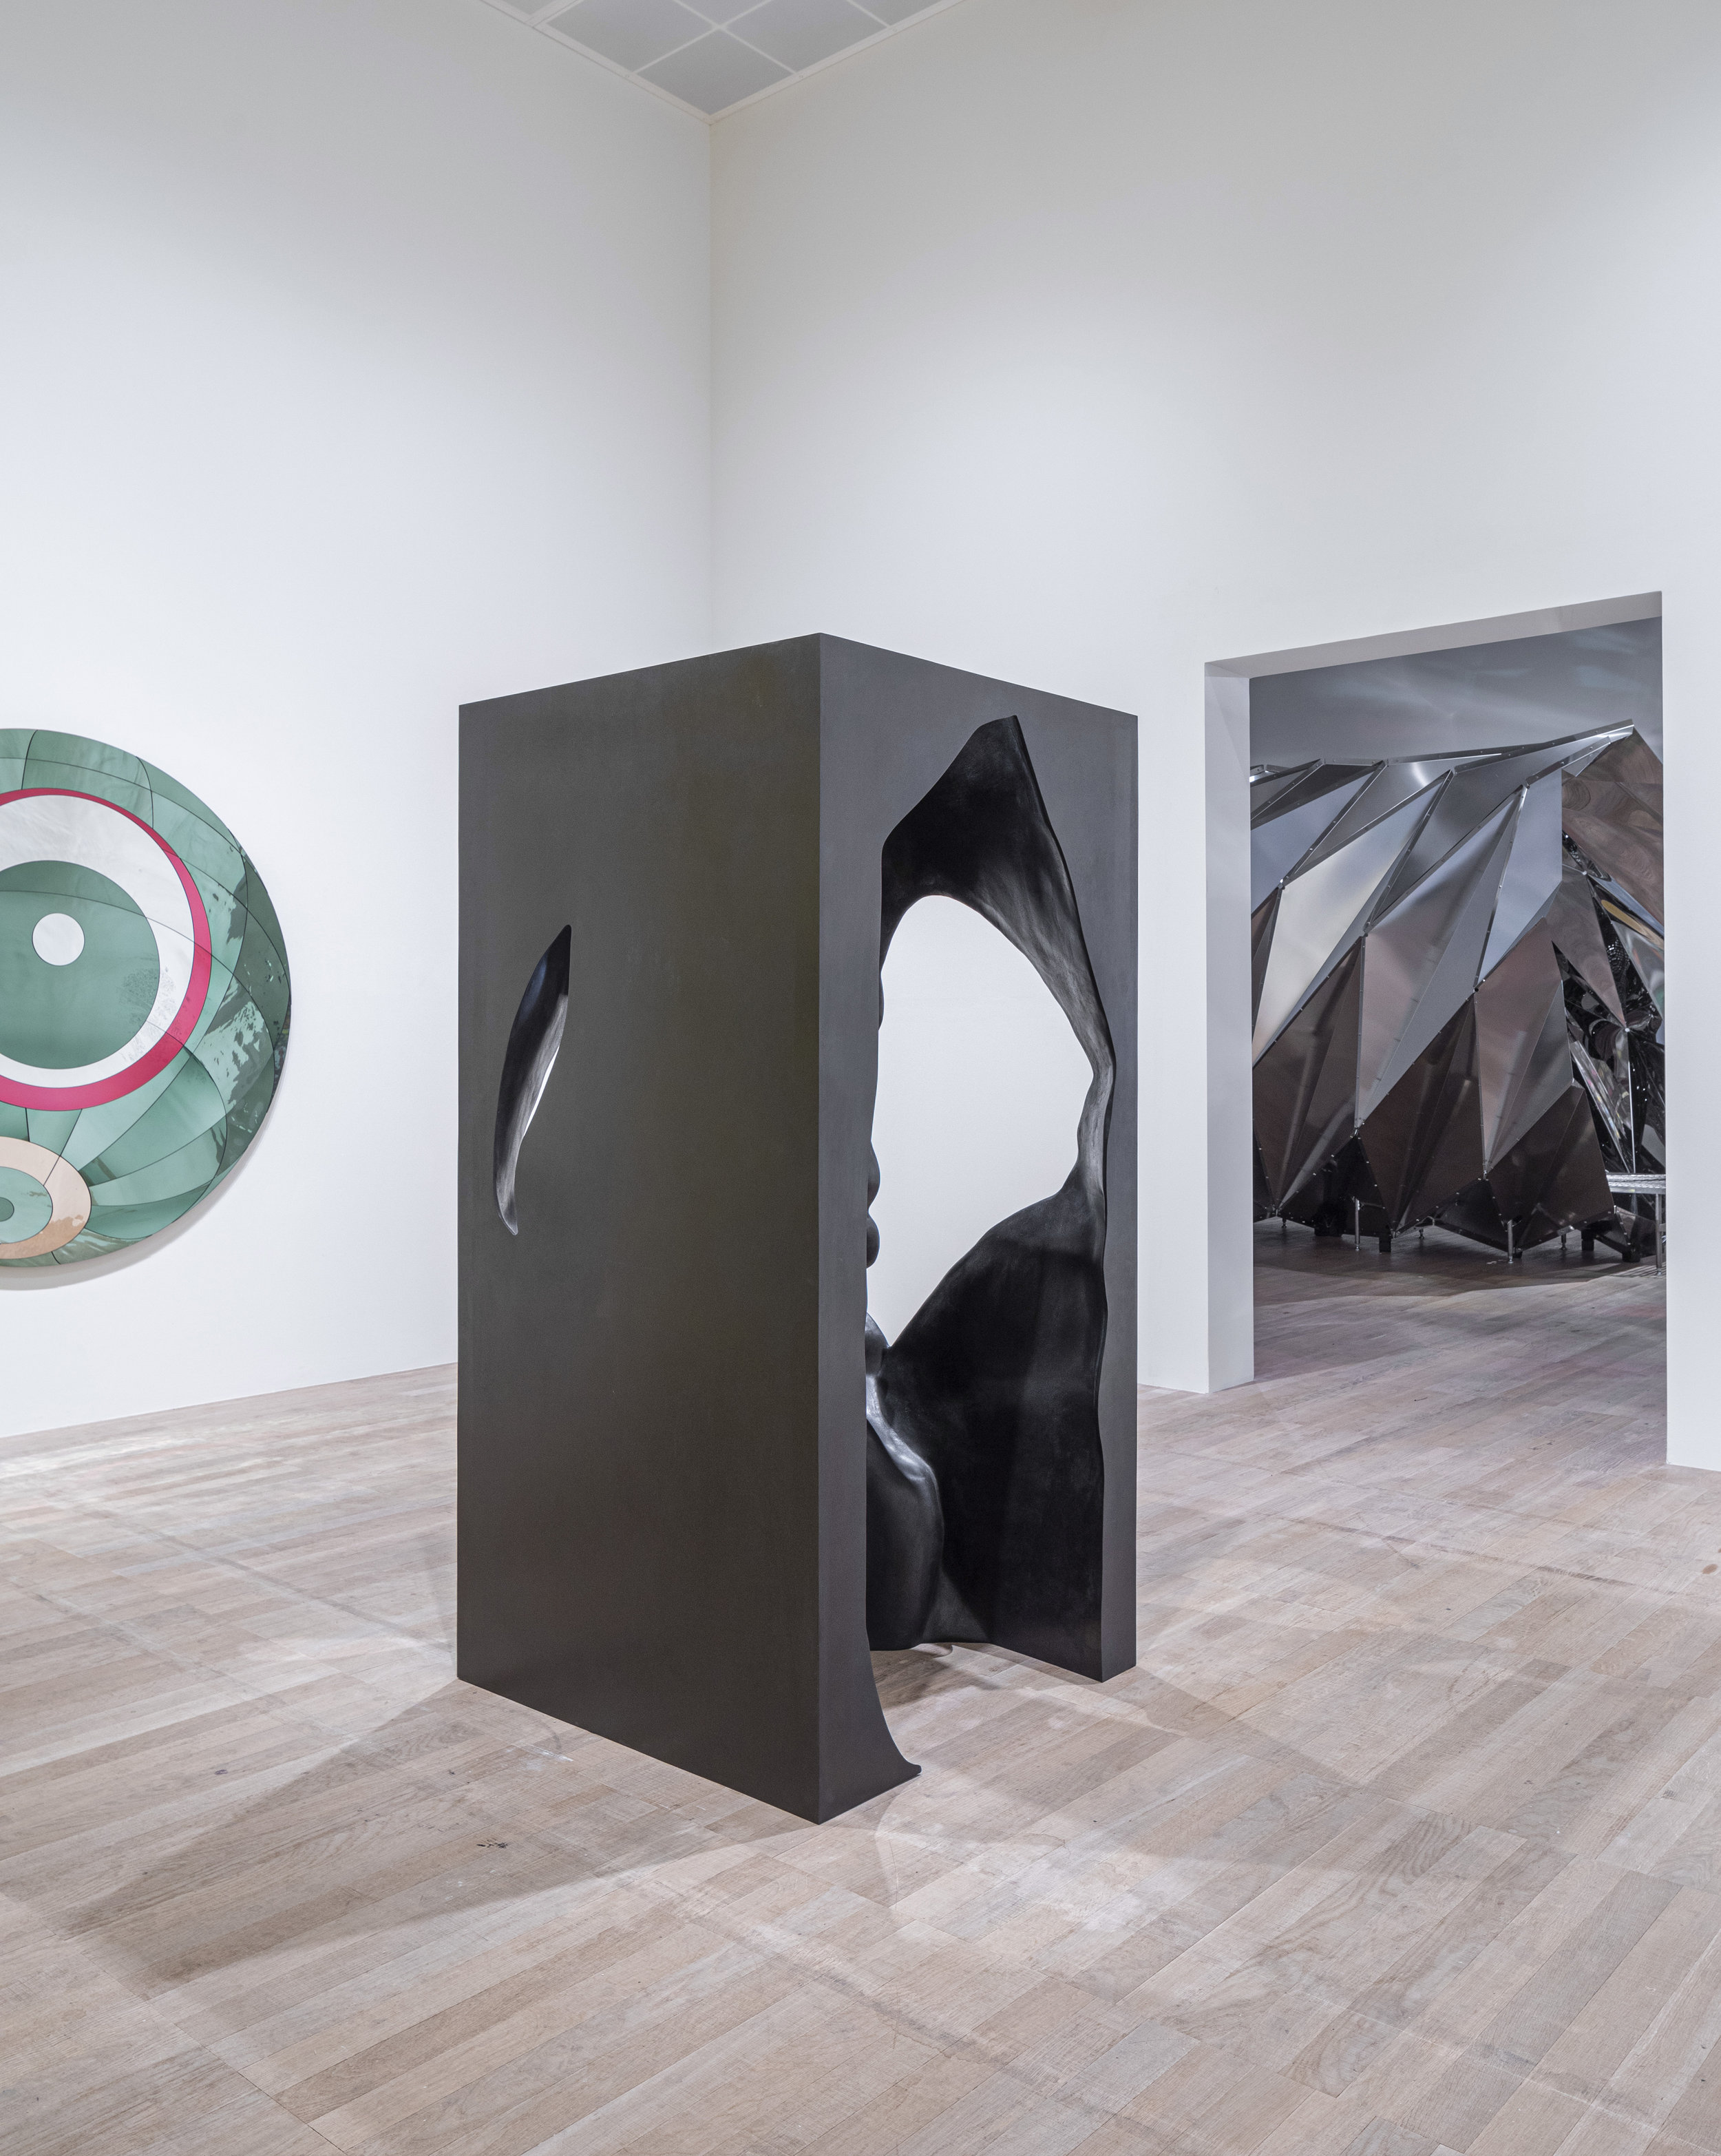 Olafur Eliasson (b.1967)   The presence of absence pavilion  2019 Bronze 200 x 100 x 100 cm Installation view: Tate Modern, London Photo: Anders Sune Berg Courtesy the artist; neugerriemschneider, Berlin; Tanya Bonakdar Gallery, New York / Los Angeles © 2019 Olafur Eliasson